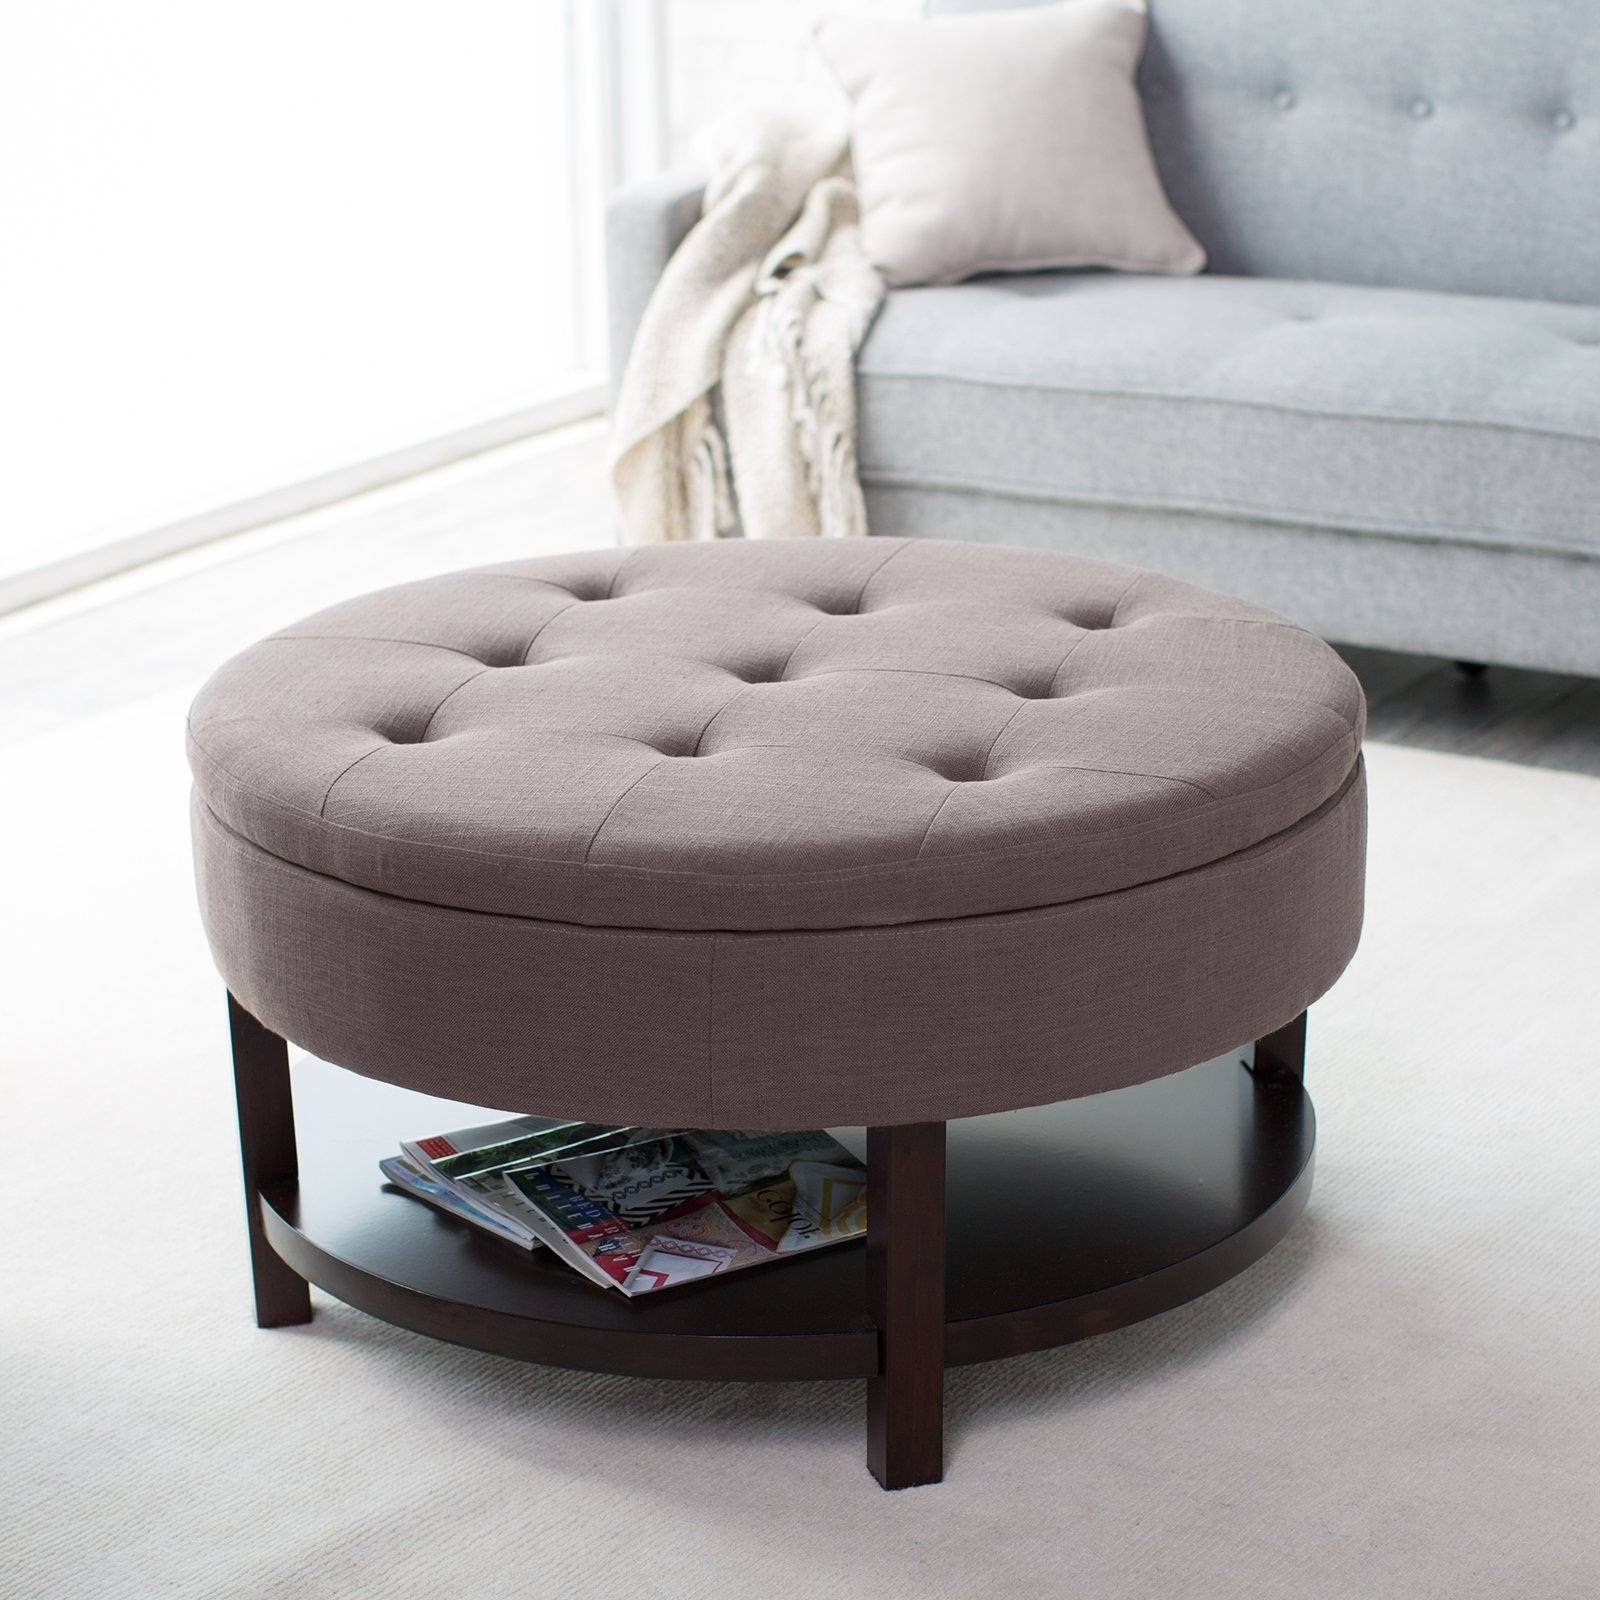 Coffee Table: Awesome Round Ottoman Coffee Table Upholstered Round for Round Upholstered Coffee Tables (Image 5 of 30)